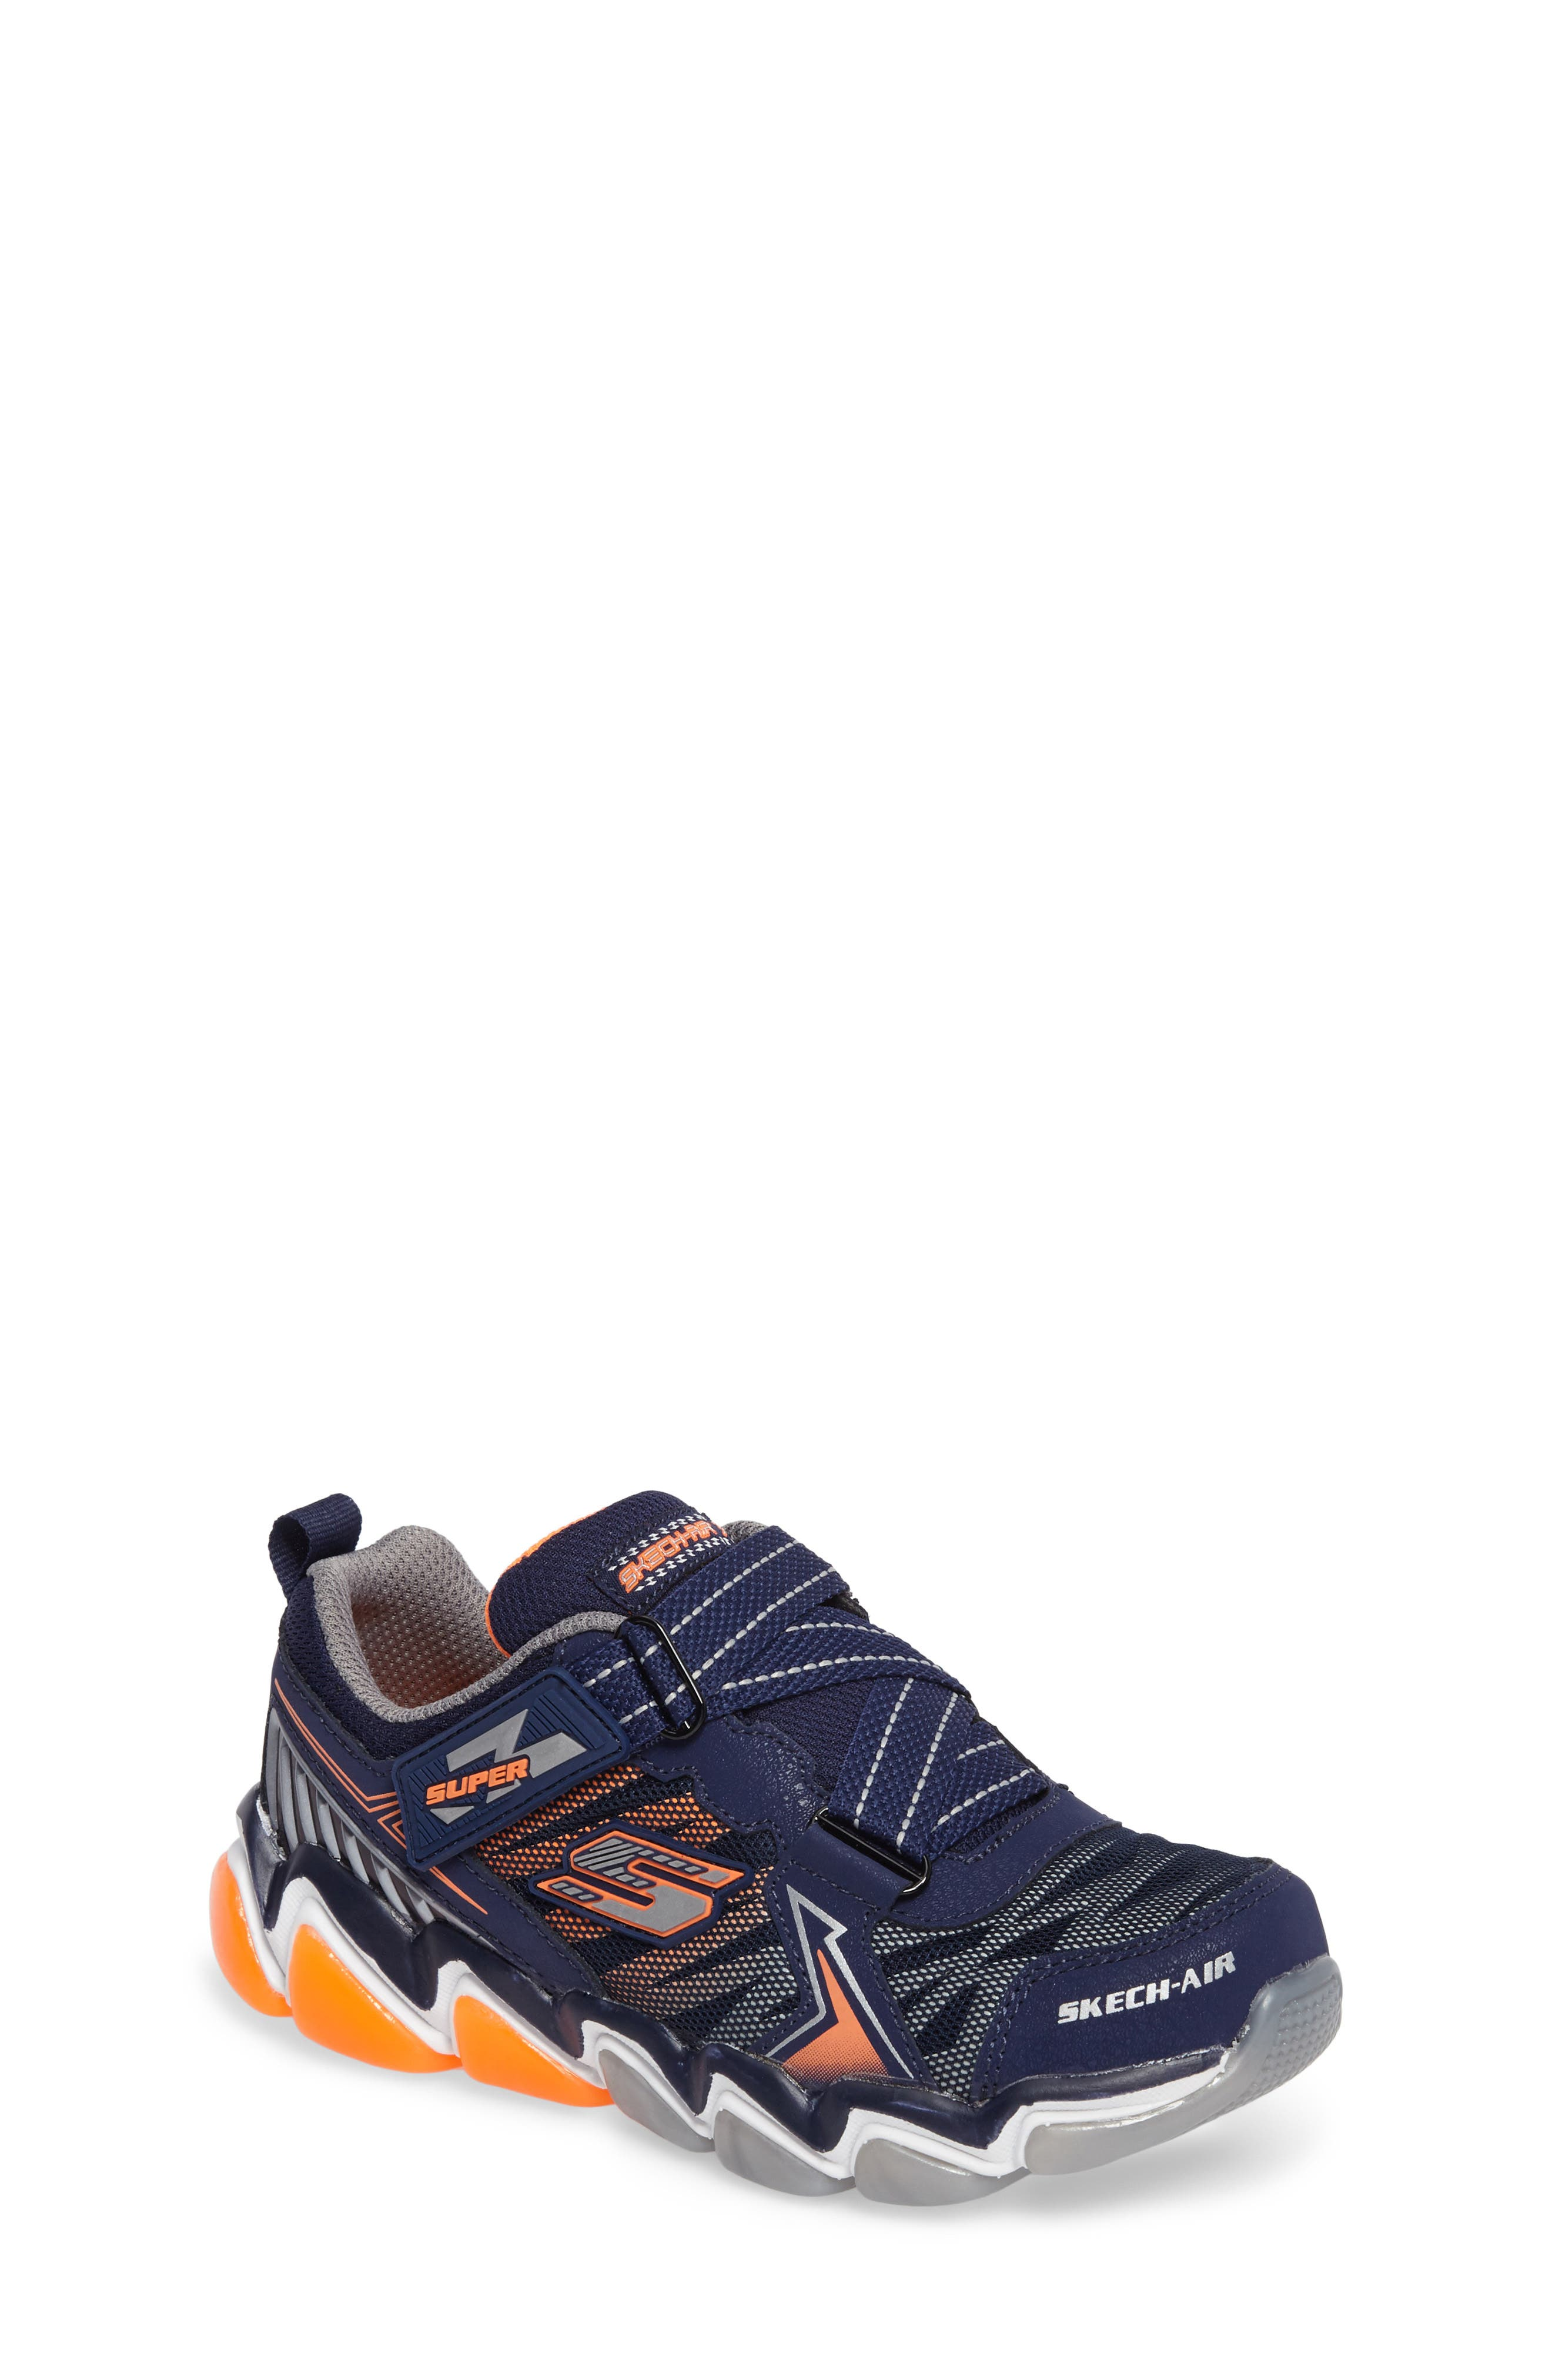 Skech-Air 3.0 Downswitch Sneaker,                             Main thumbnail 1, color,                             Navy/ Orange